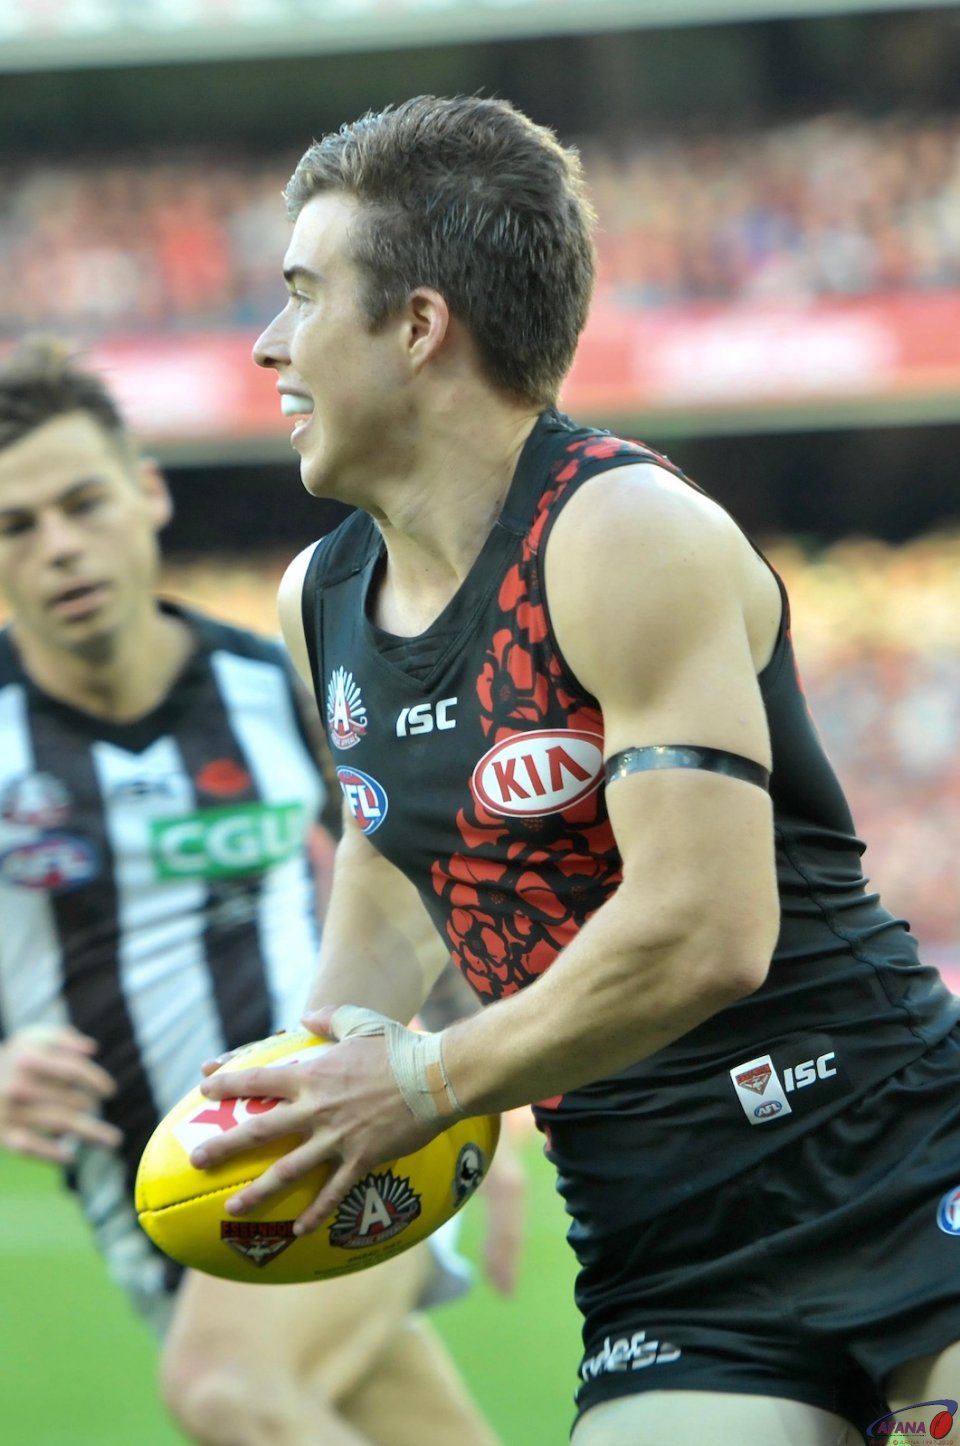 Zach Merrett one of the games rsisng stars